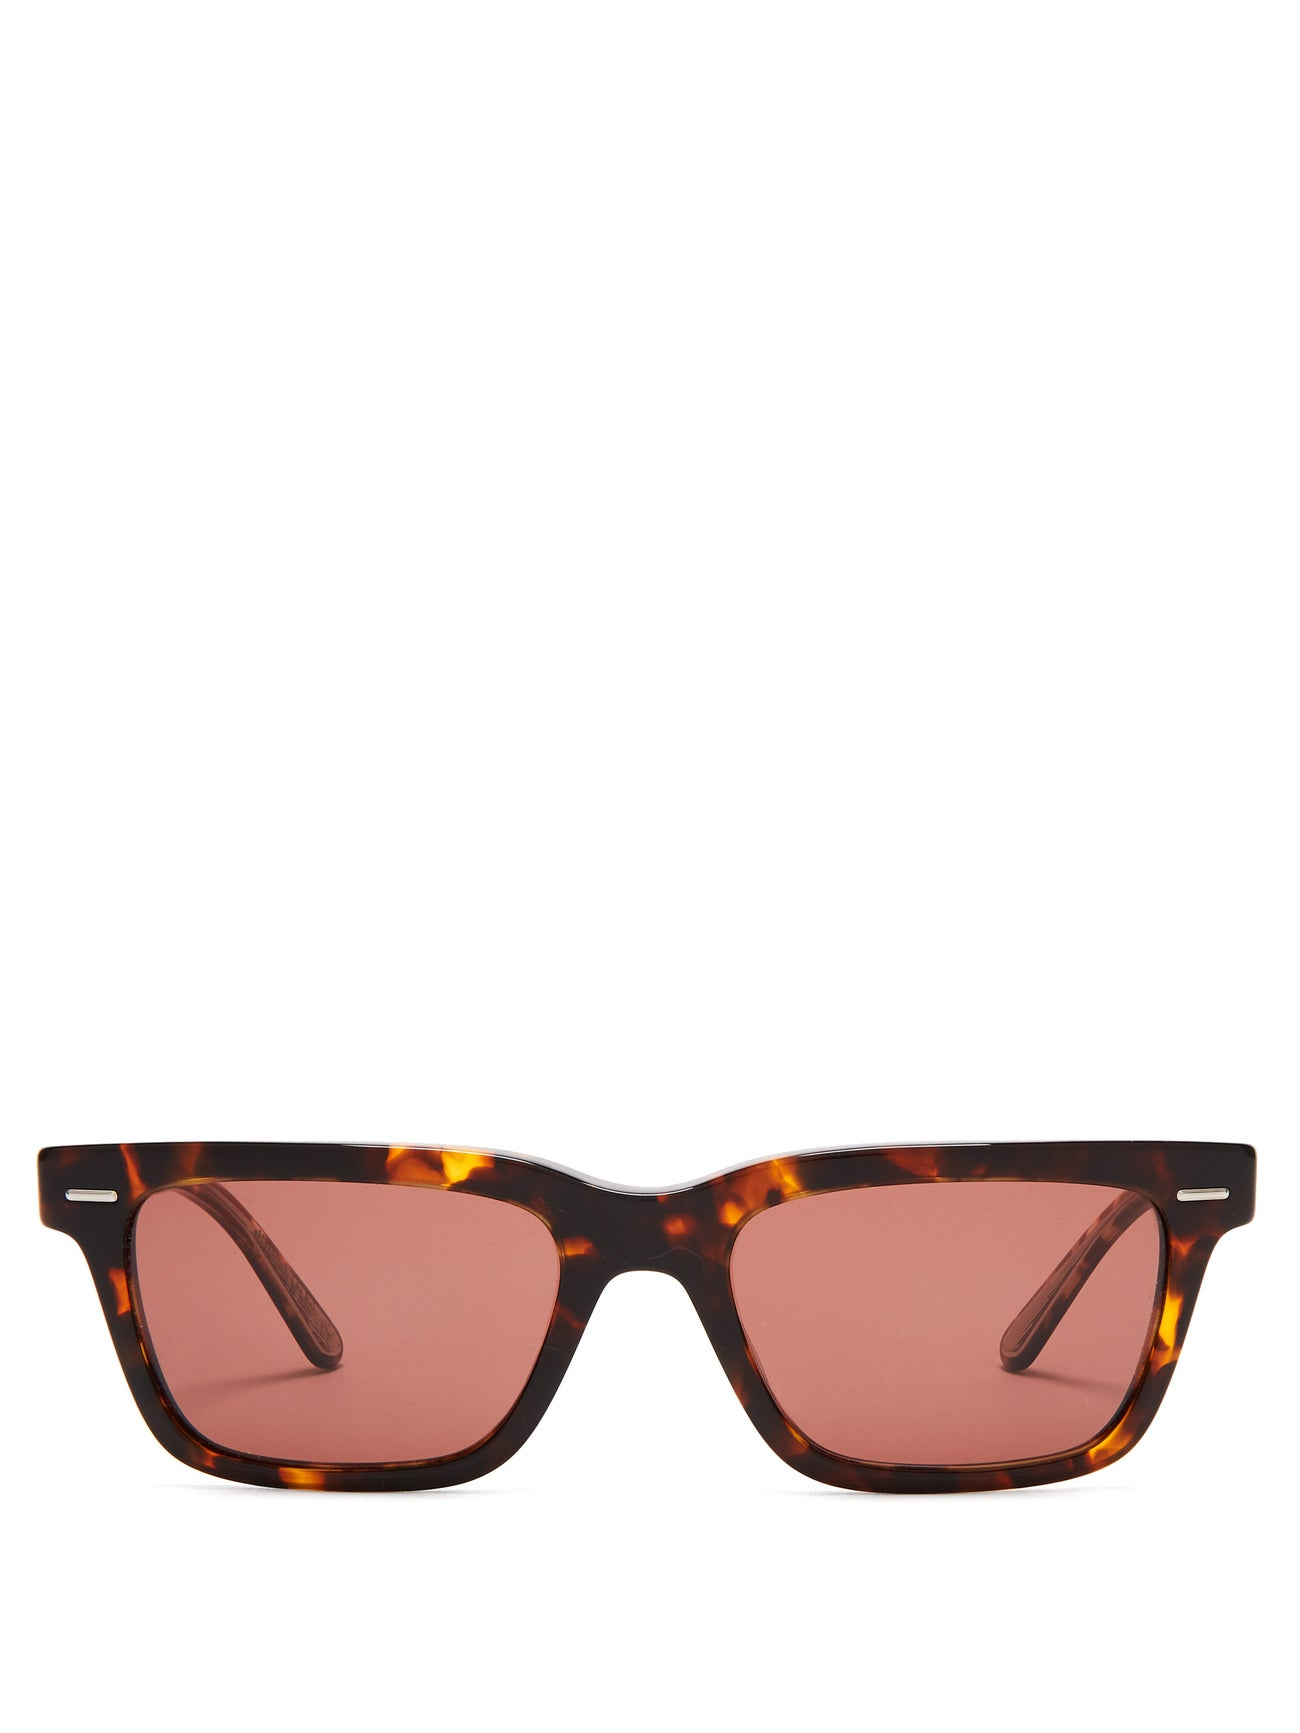 X Oliver Peoples BA CC acetate sunglasses by The-Row, available on matchesfashion.com for EUR330 Kaia Gerber Sunglasses Exact Product